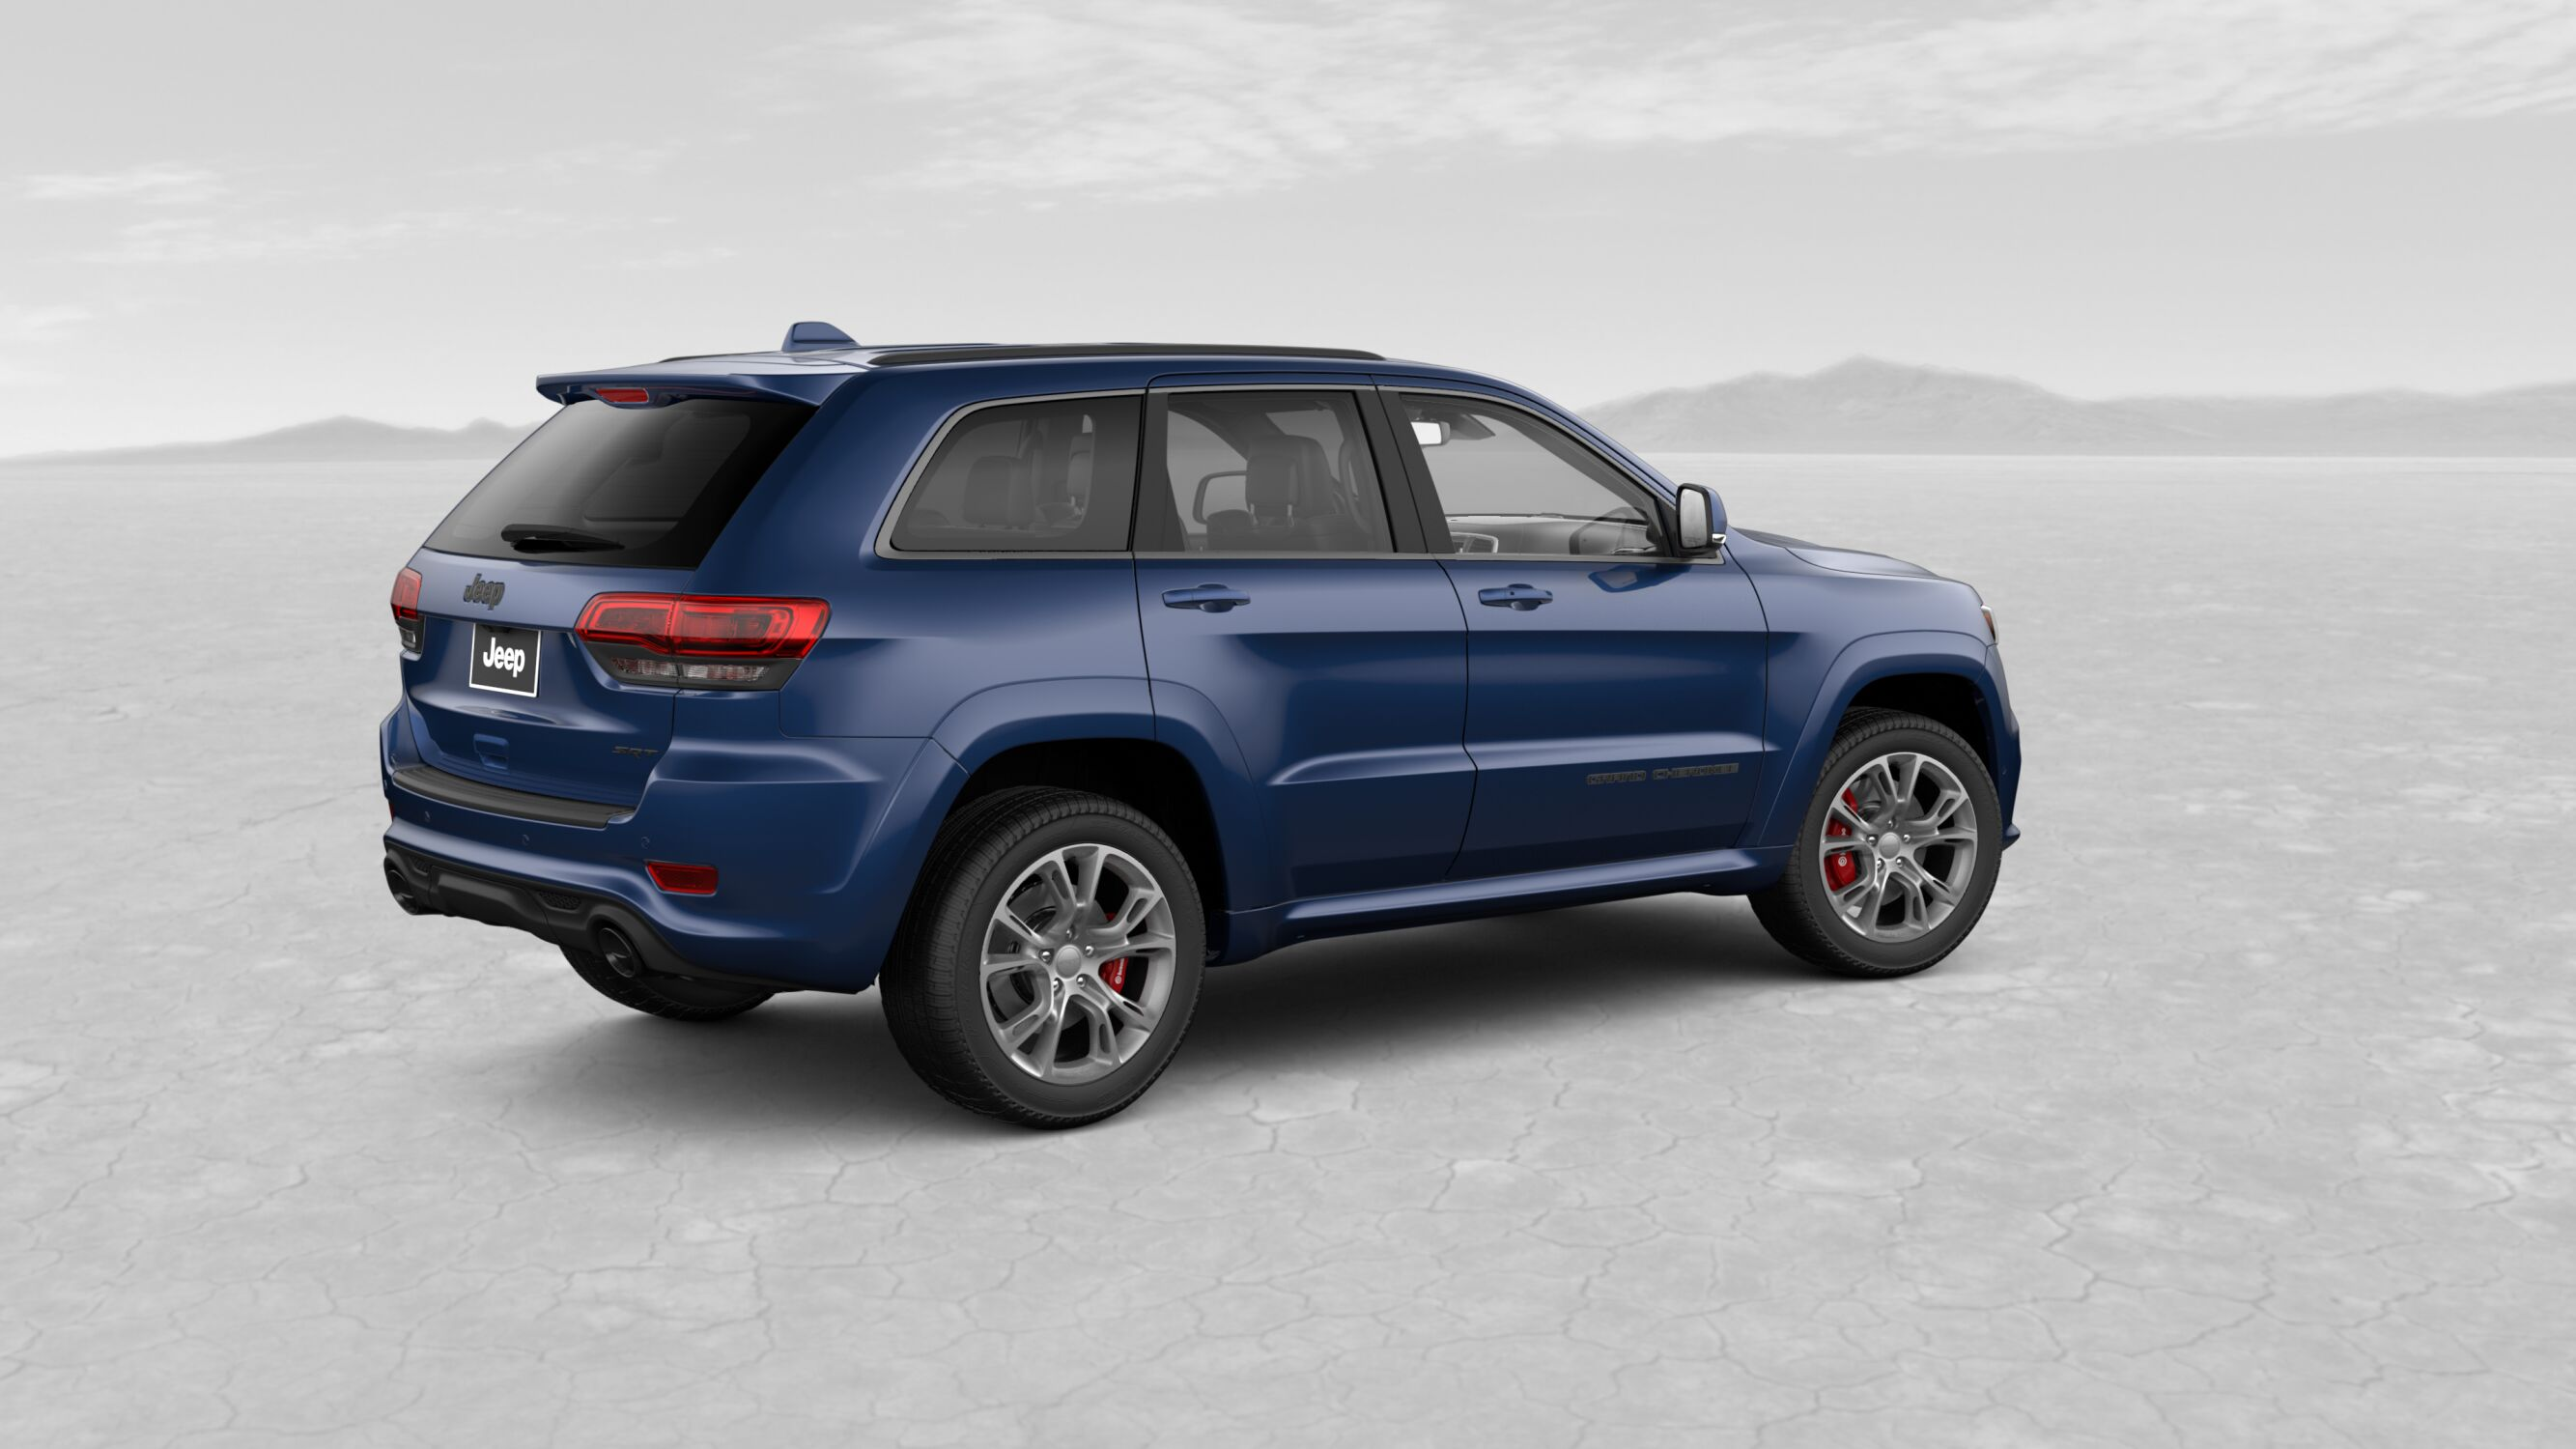 2018 Jeep Grand Cherokee Srt Mark S Casa Chrysler Jeep